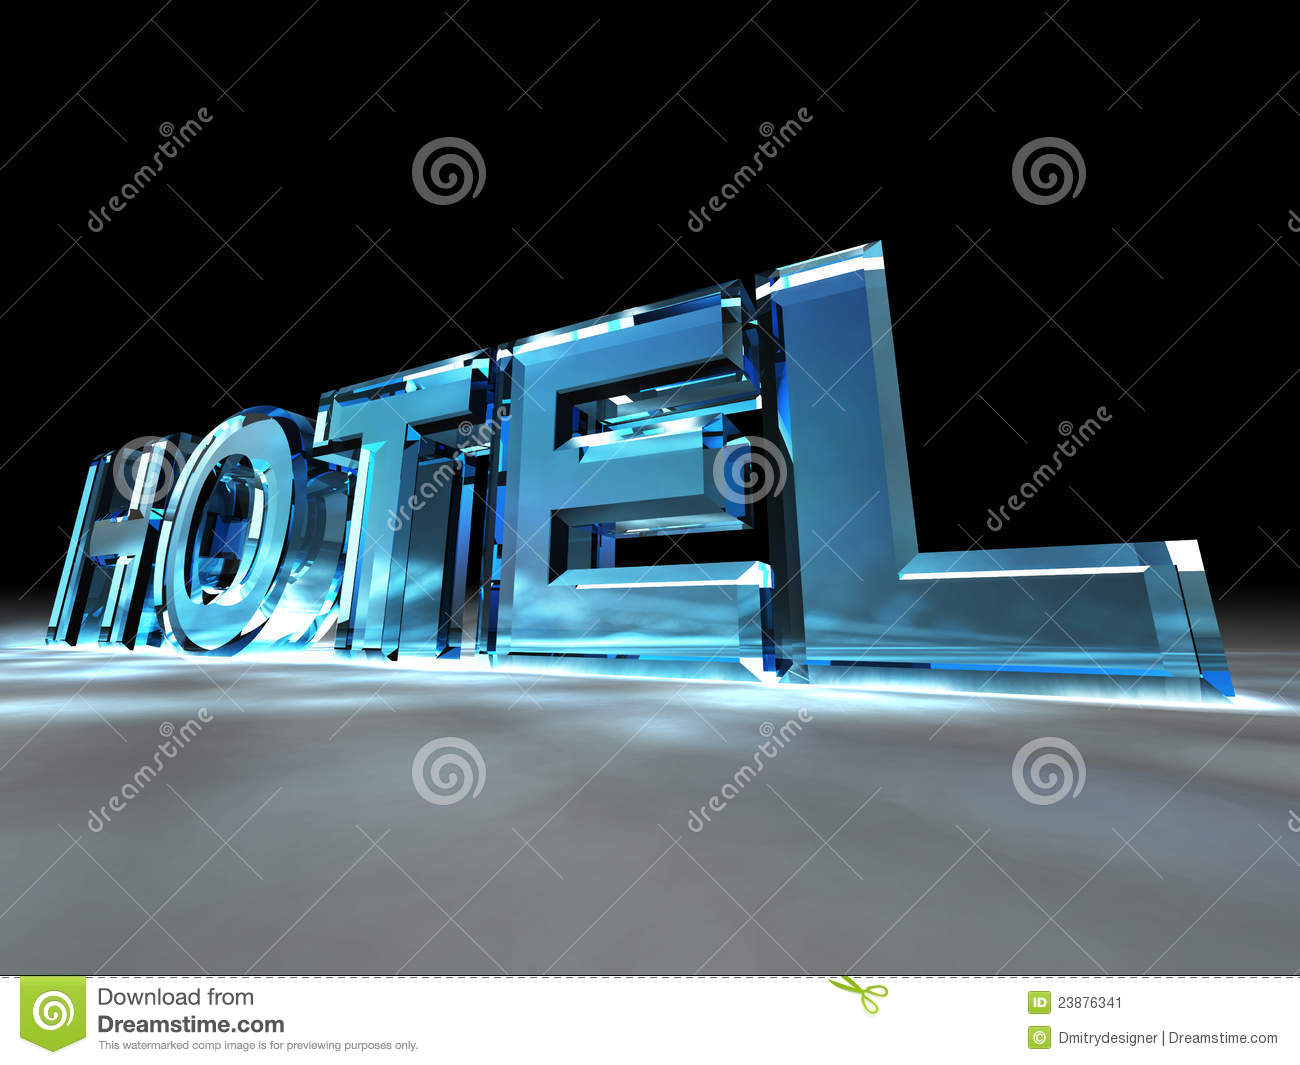 The sign Hotel